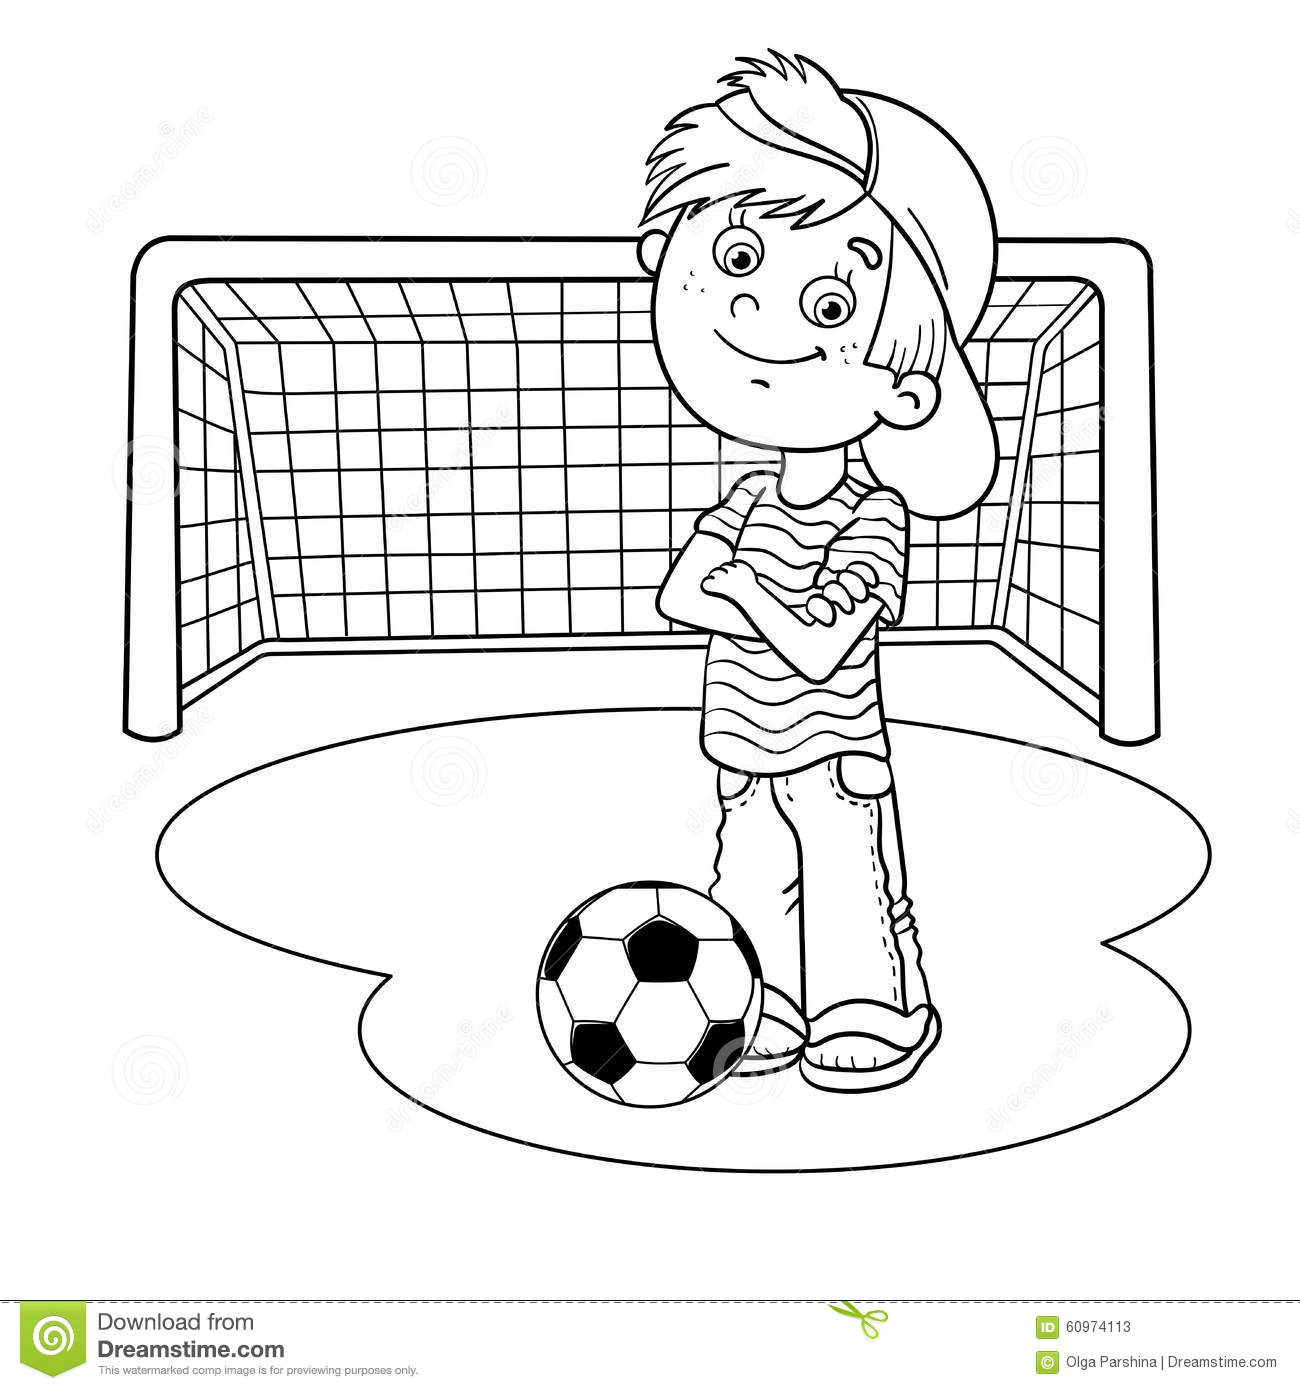 coloring pages for boys soccer - photo#29